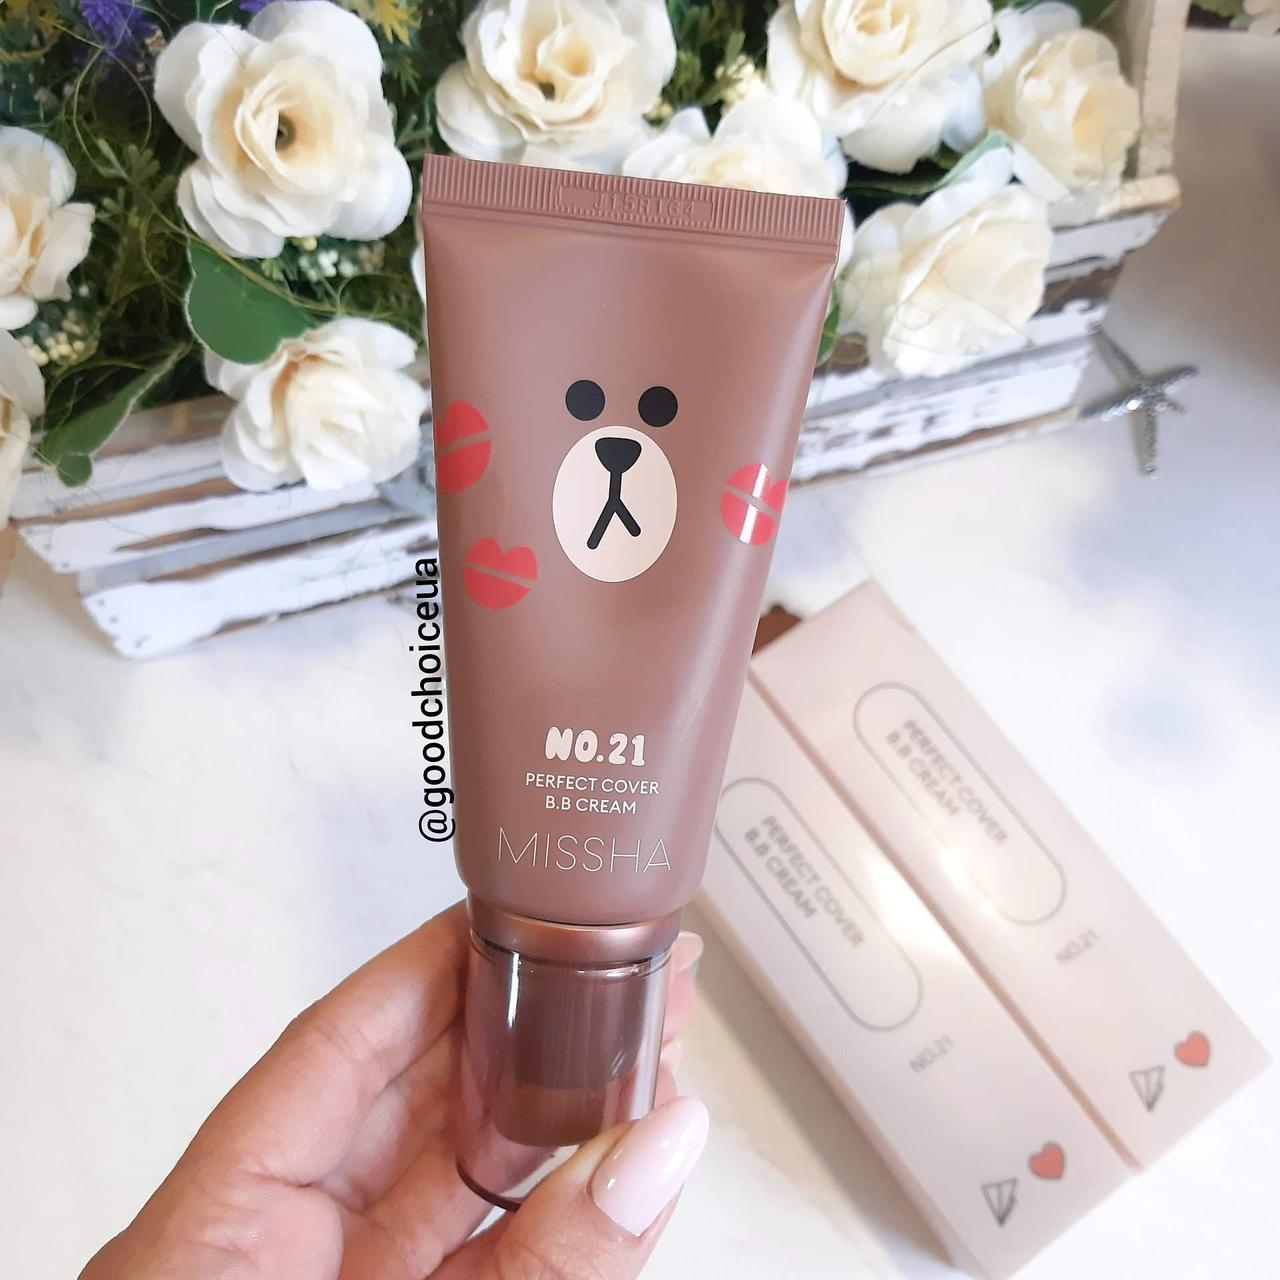 BB крем Missha M Perfect Cover BB Cream SPF 42 PA+++ №21 Line Friends Edition